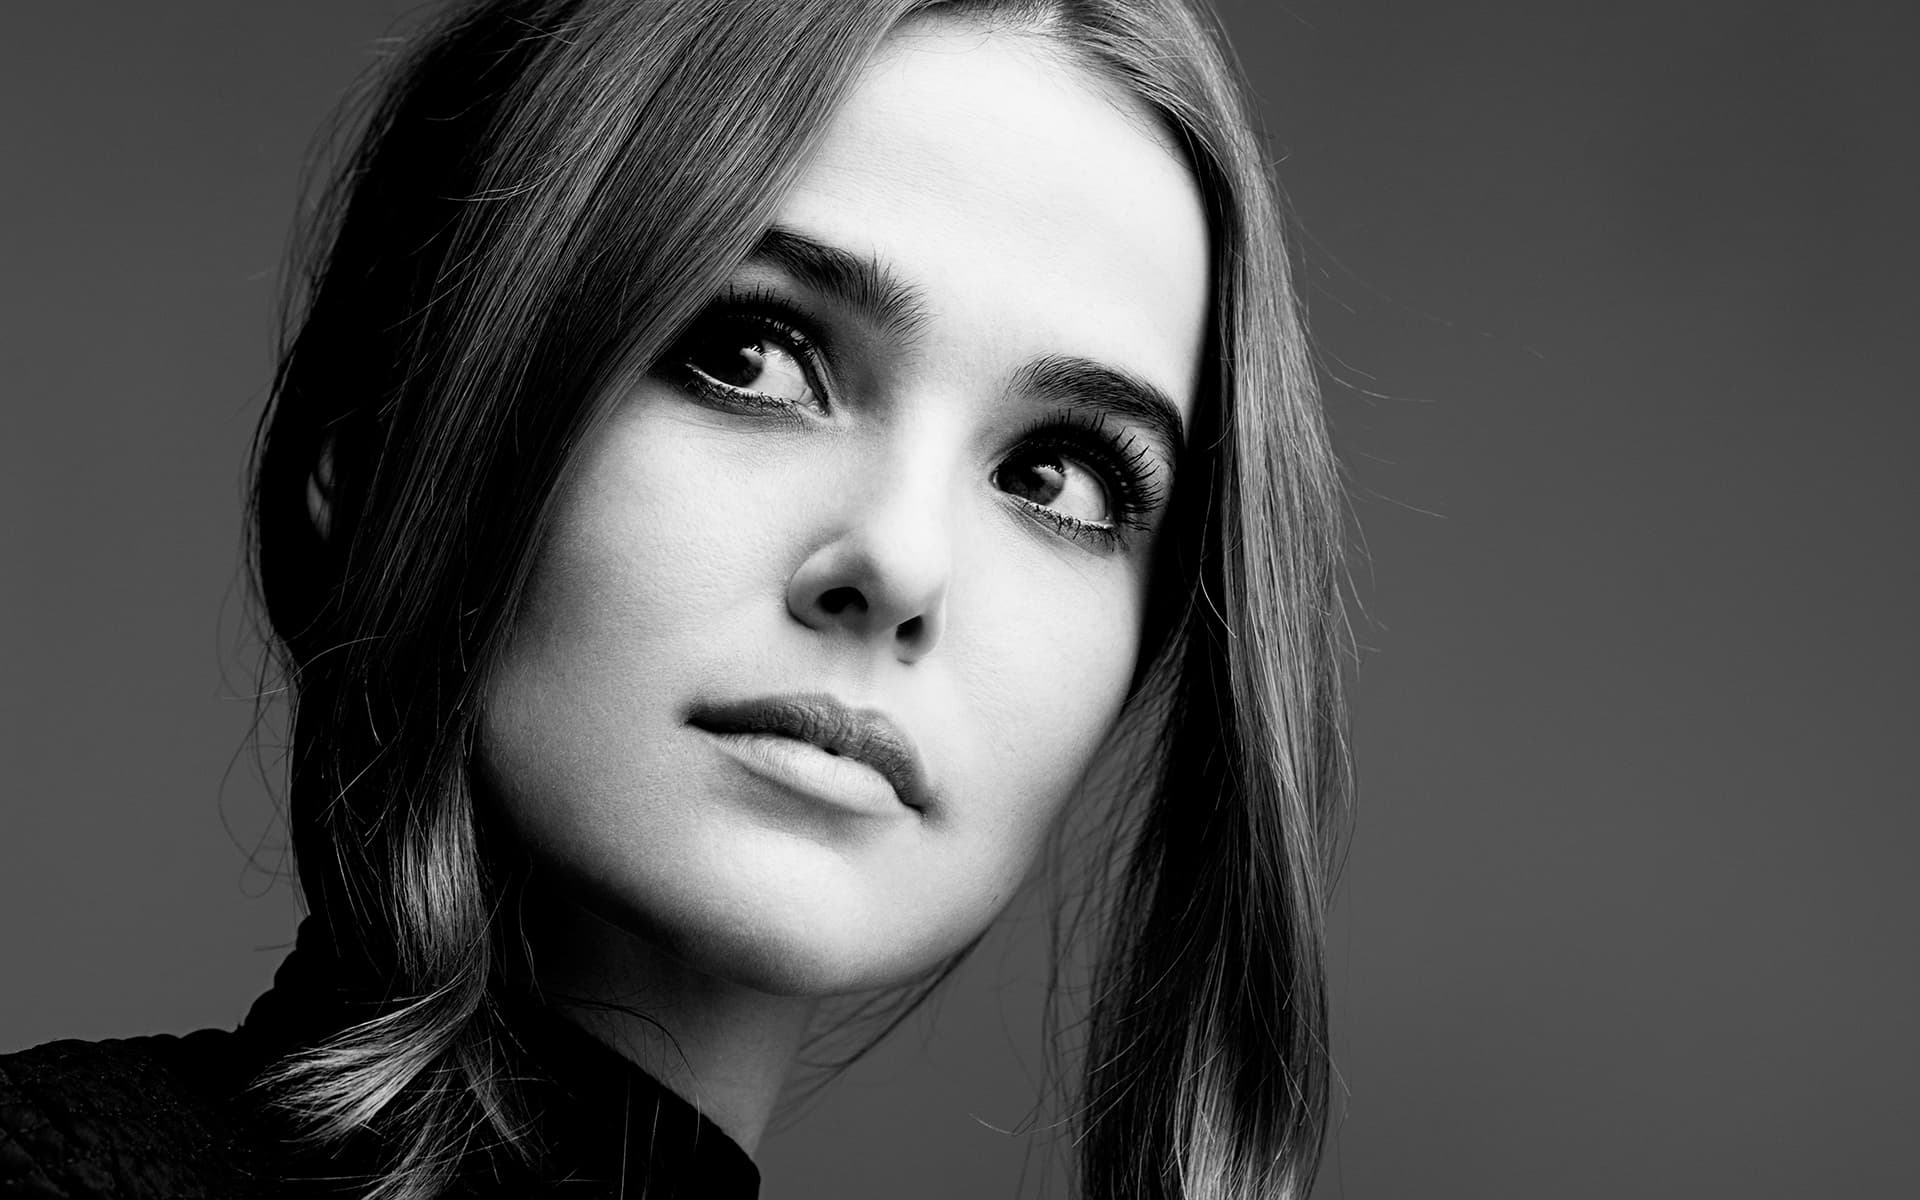 Zoey Deutch black and white background Wallpapers High Quality